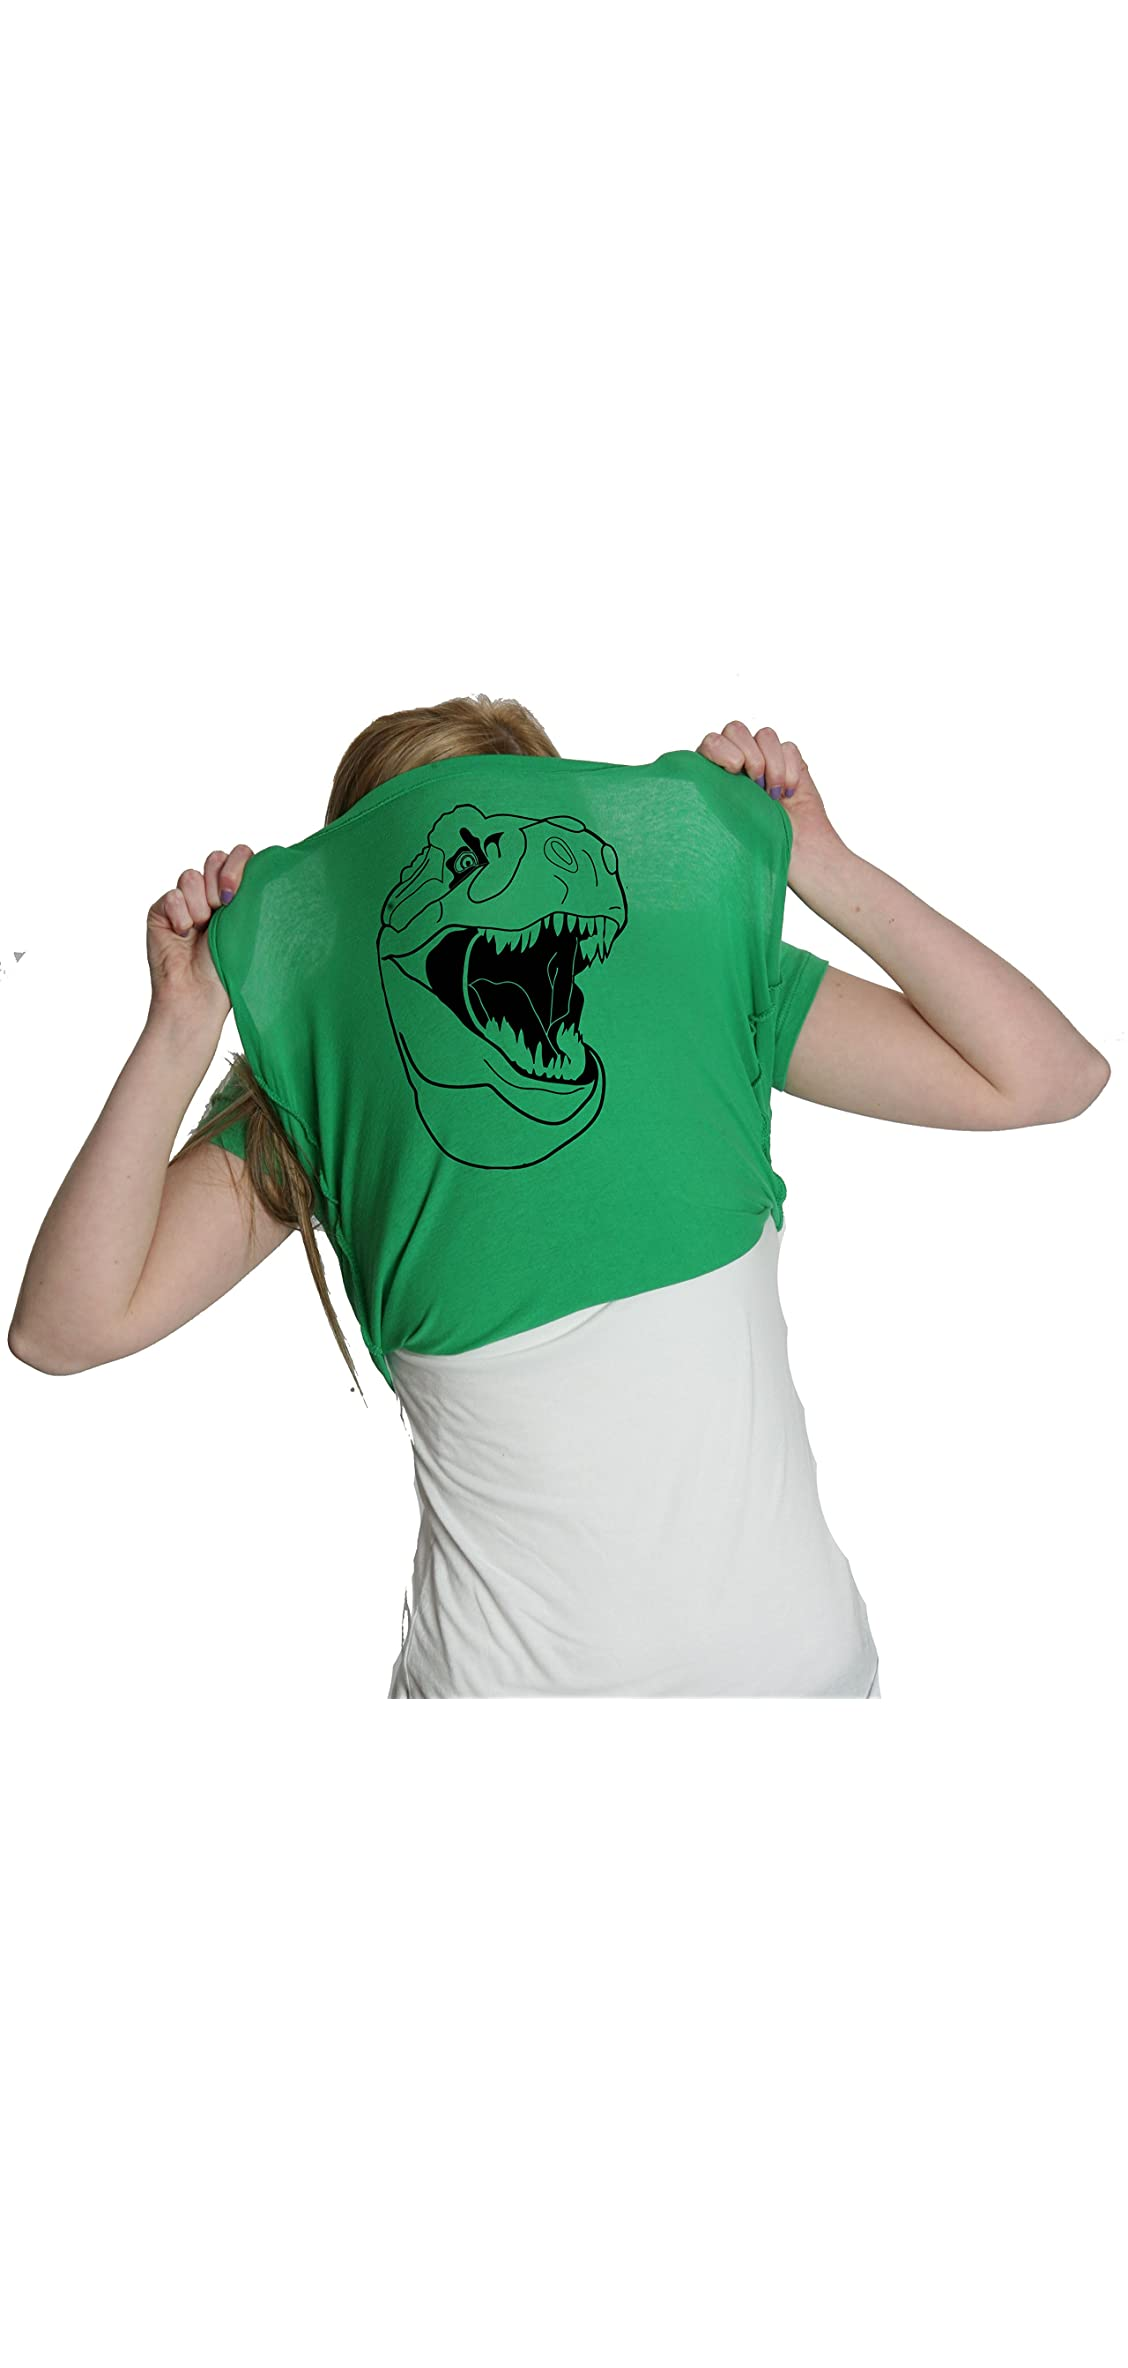 Womens Ask Me About My Trex T-shirt Funny Cool Dinosaur Trex